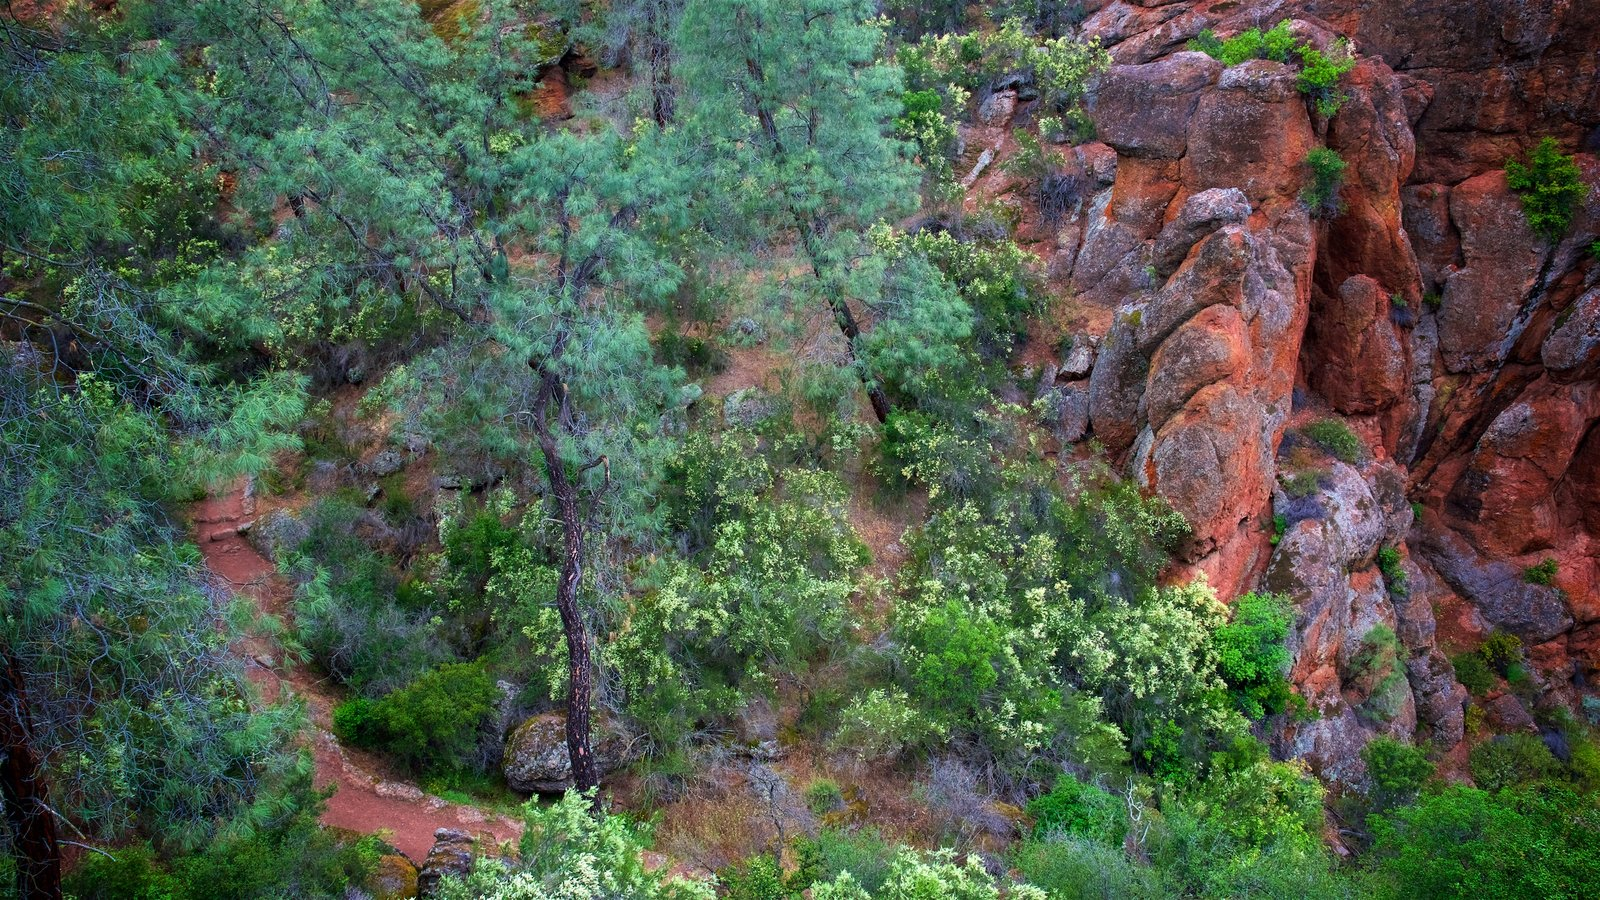 Pinnacles National Park featuring a gorge or canyon